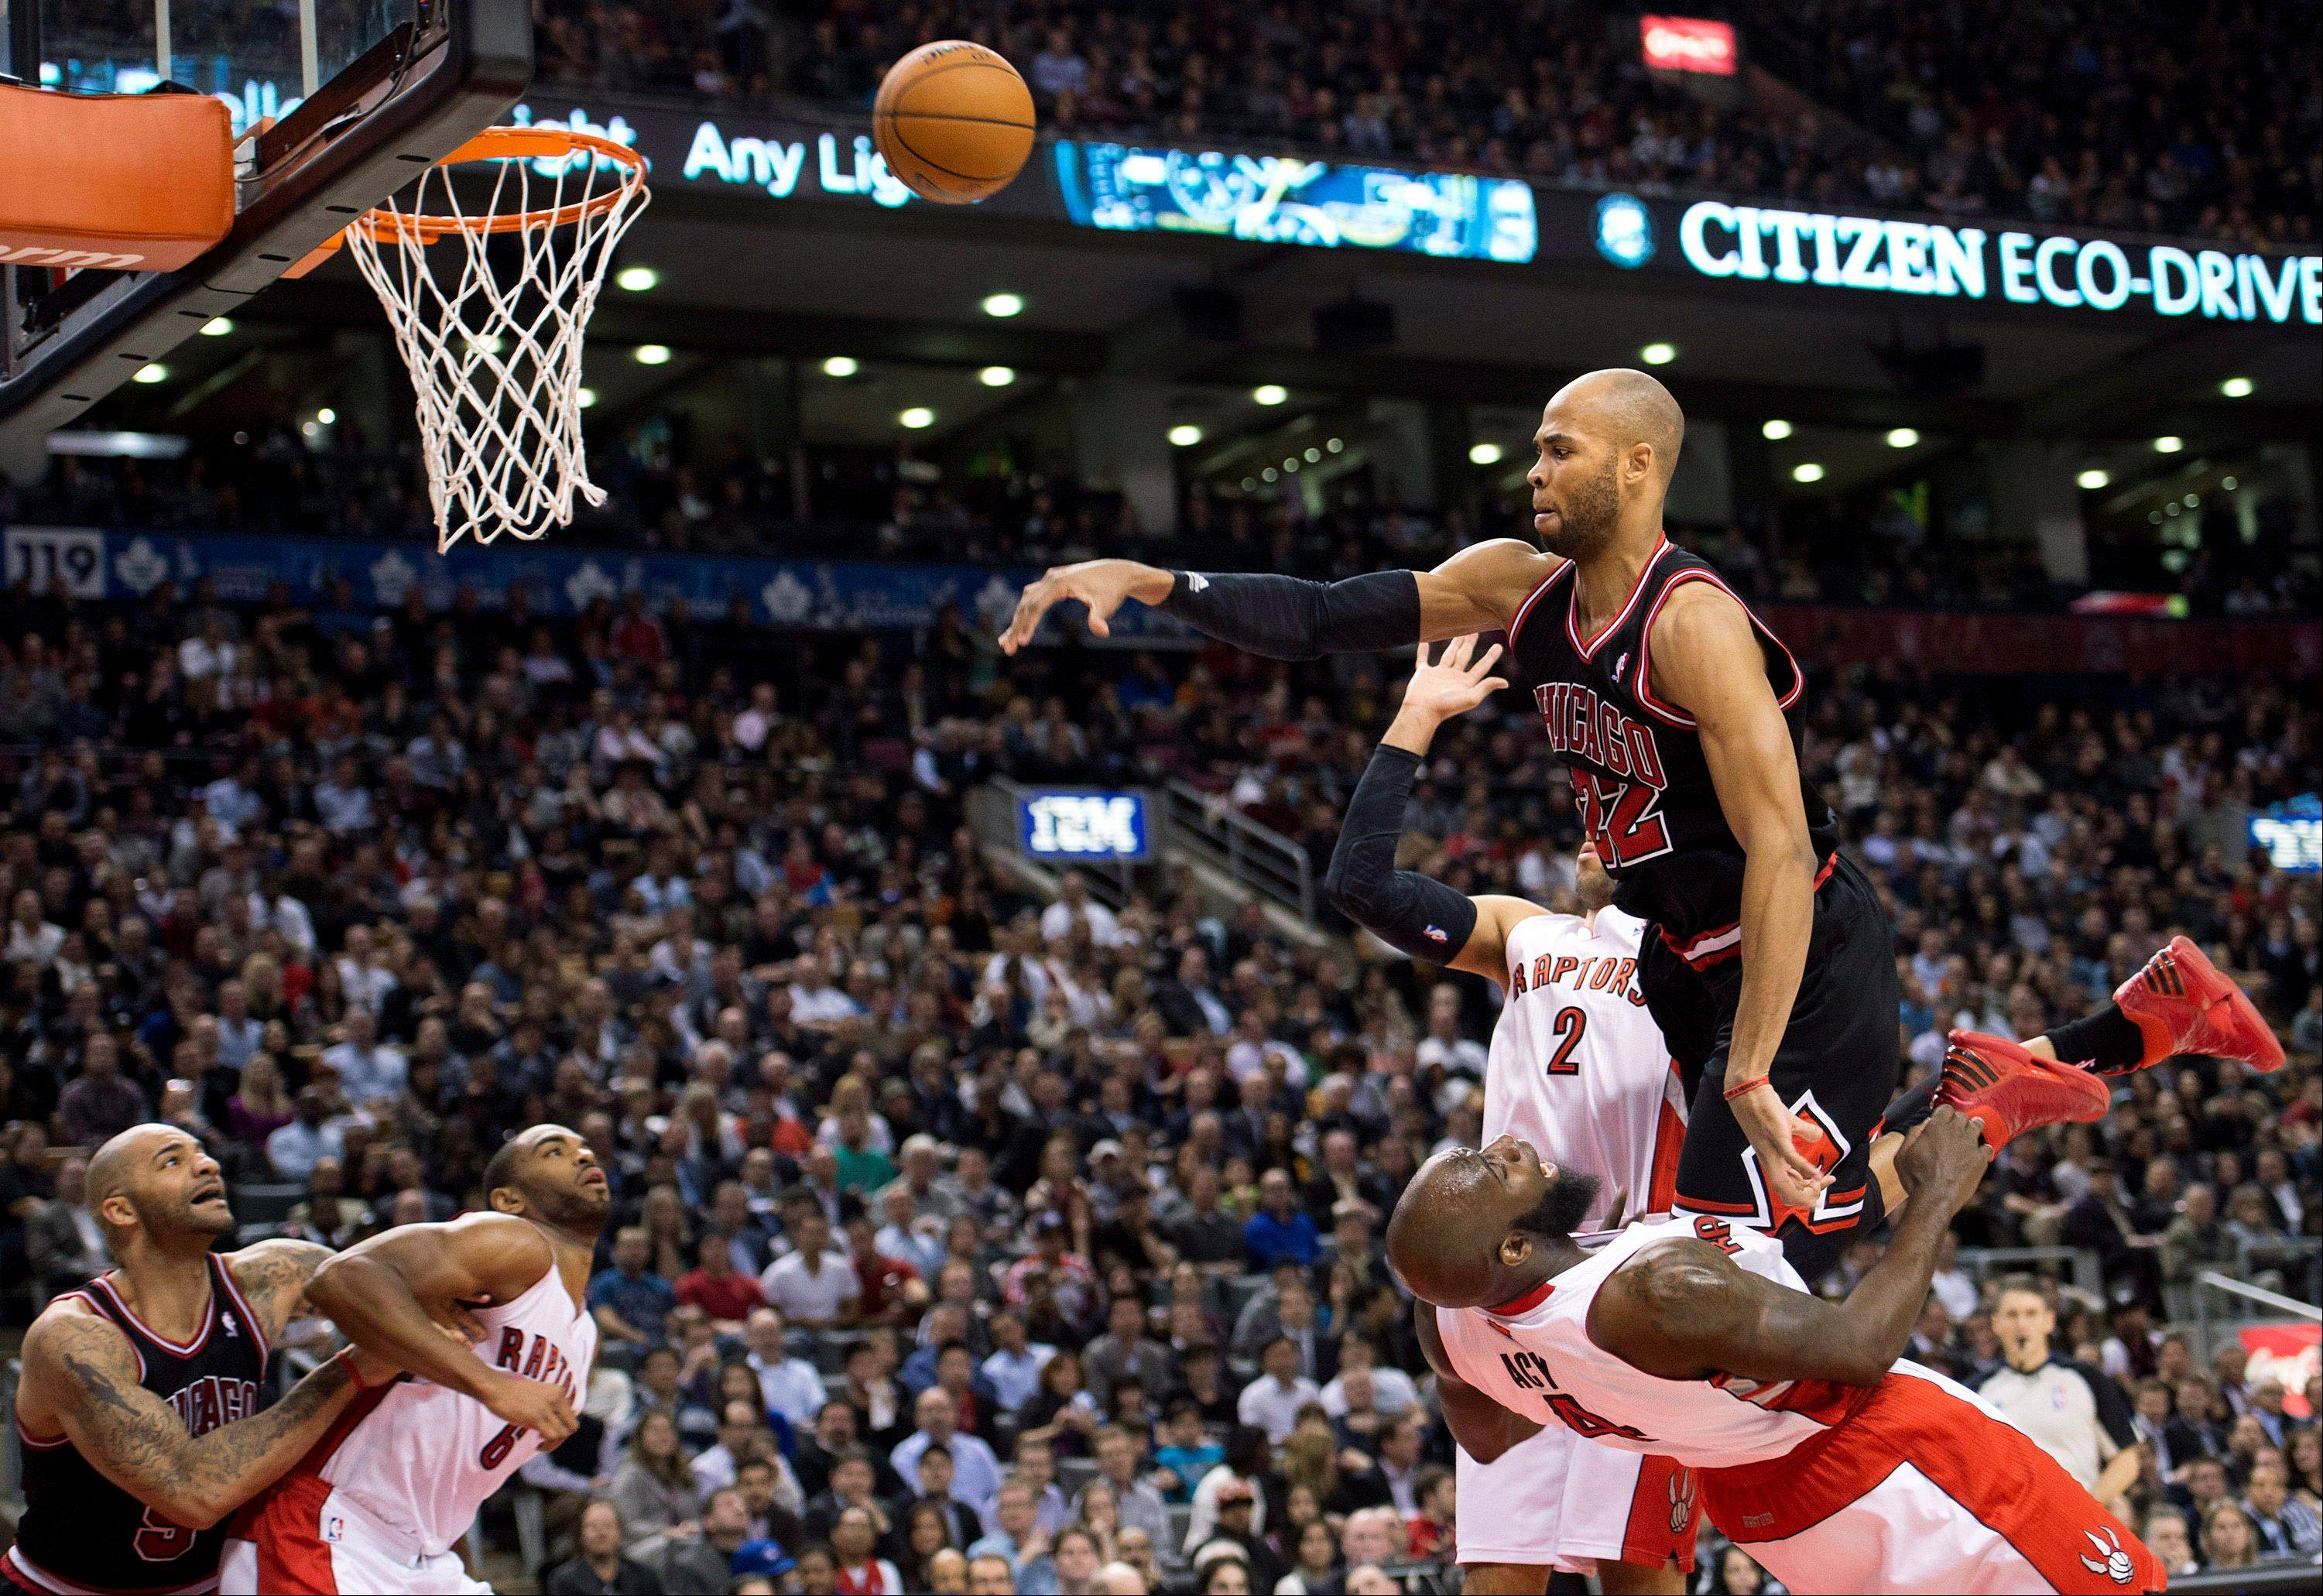 Bulls forward Taj Gibson (22) knocks down Toronto Raptors forward Quincy Acy, bottom right, during the second half of an NBA basketball game, Wednesday, Jan. 16, 2013, in Toronto. The Bulls won 107-105 in overtime.